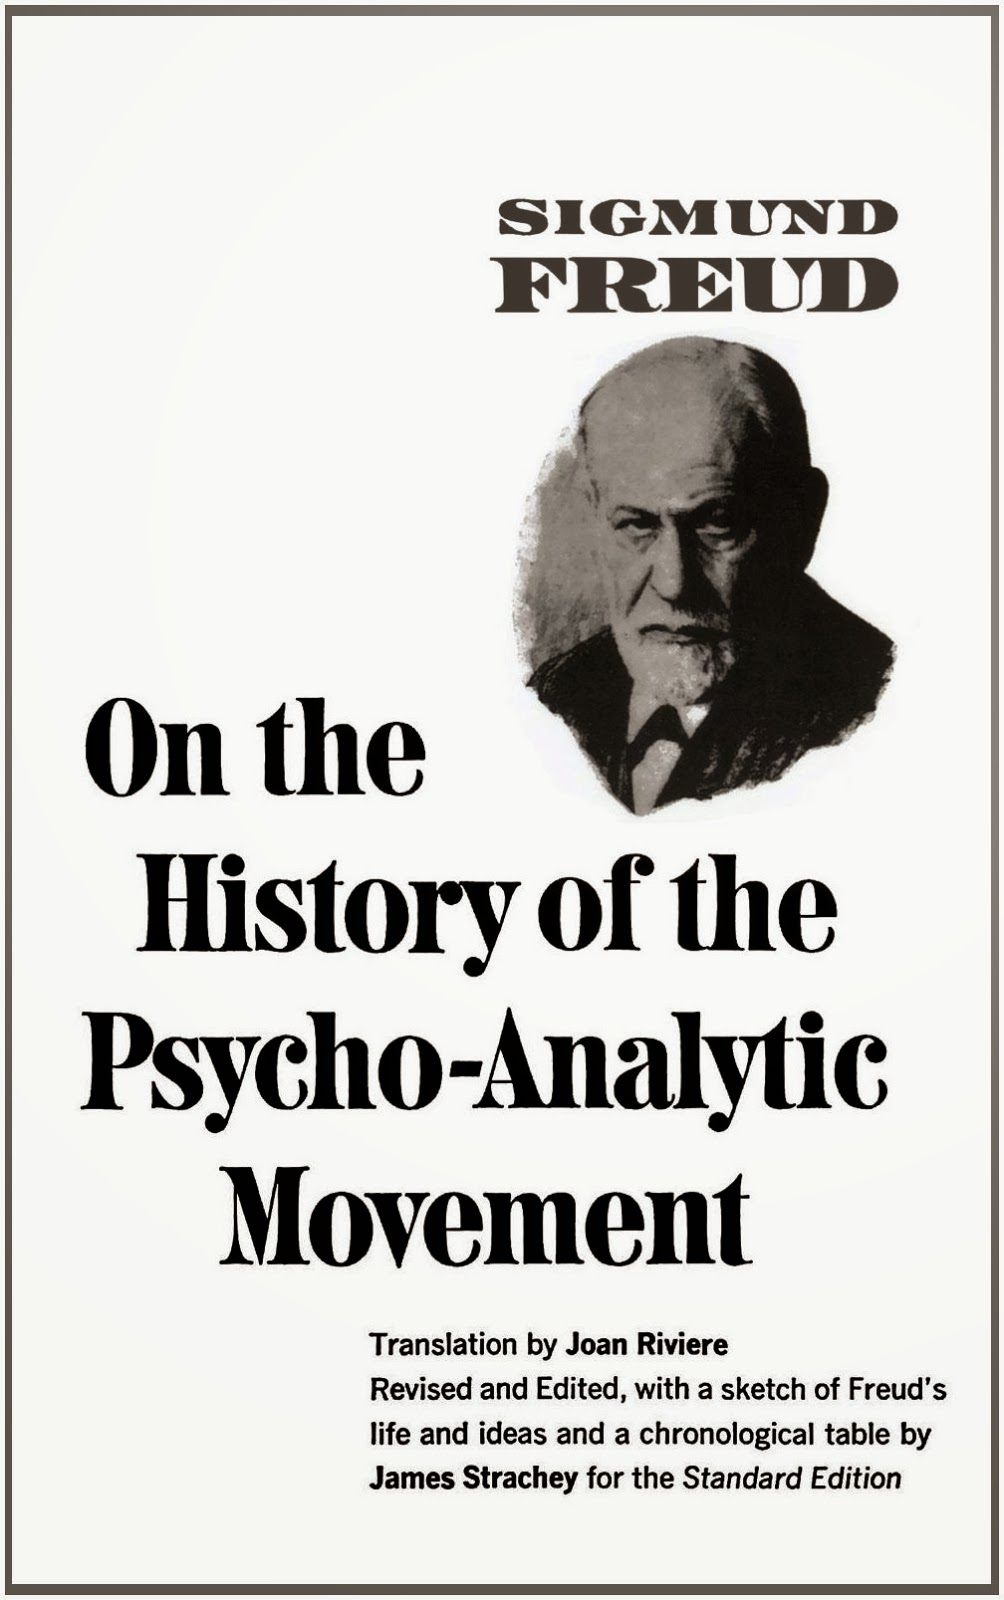 Movement Quotes Freud Quotes Free Ebook  The History Of The Psychoanalytic